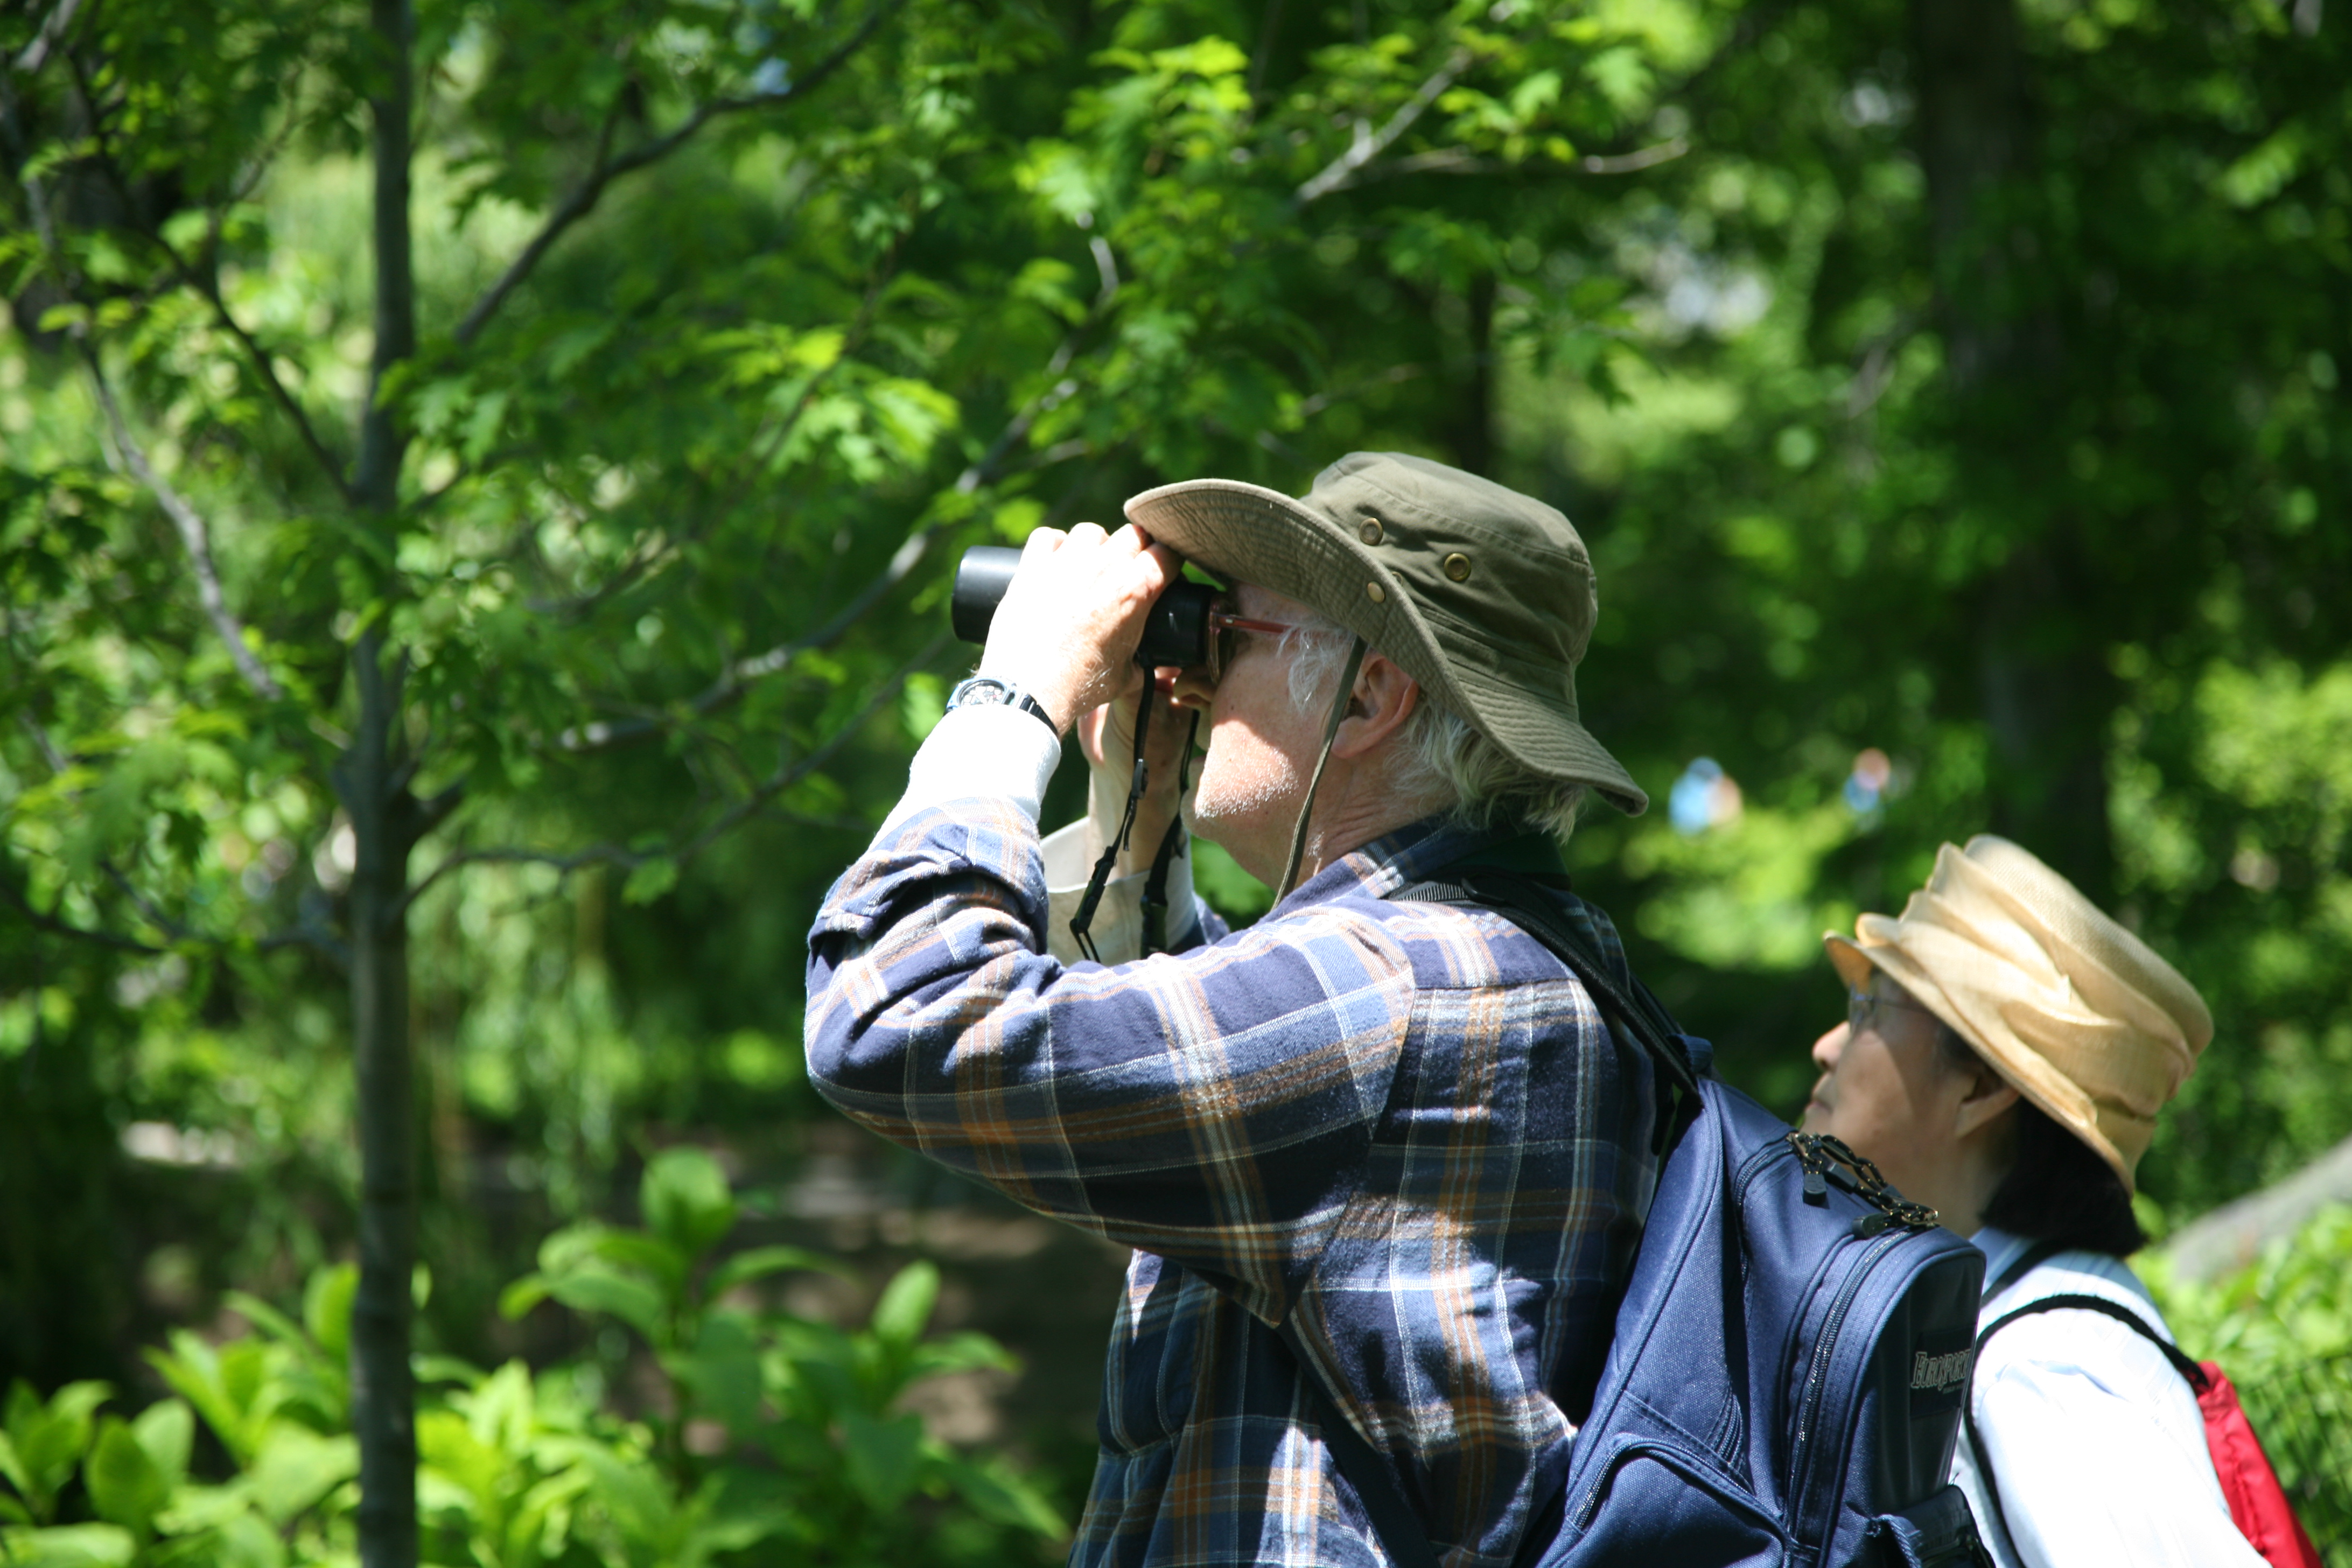 NEWSMAKER — Naturalist suggests bird watching this Spring